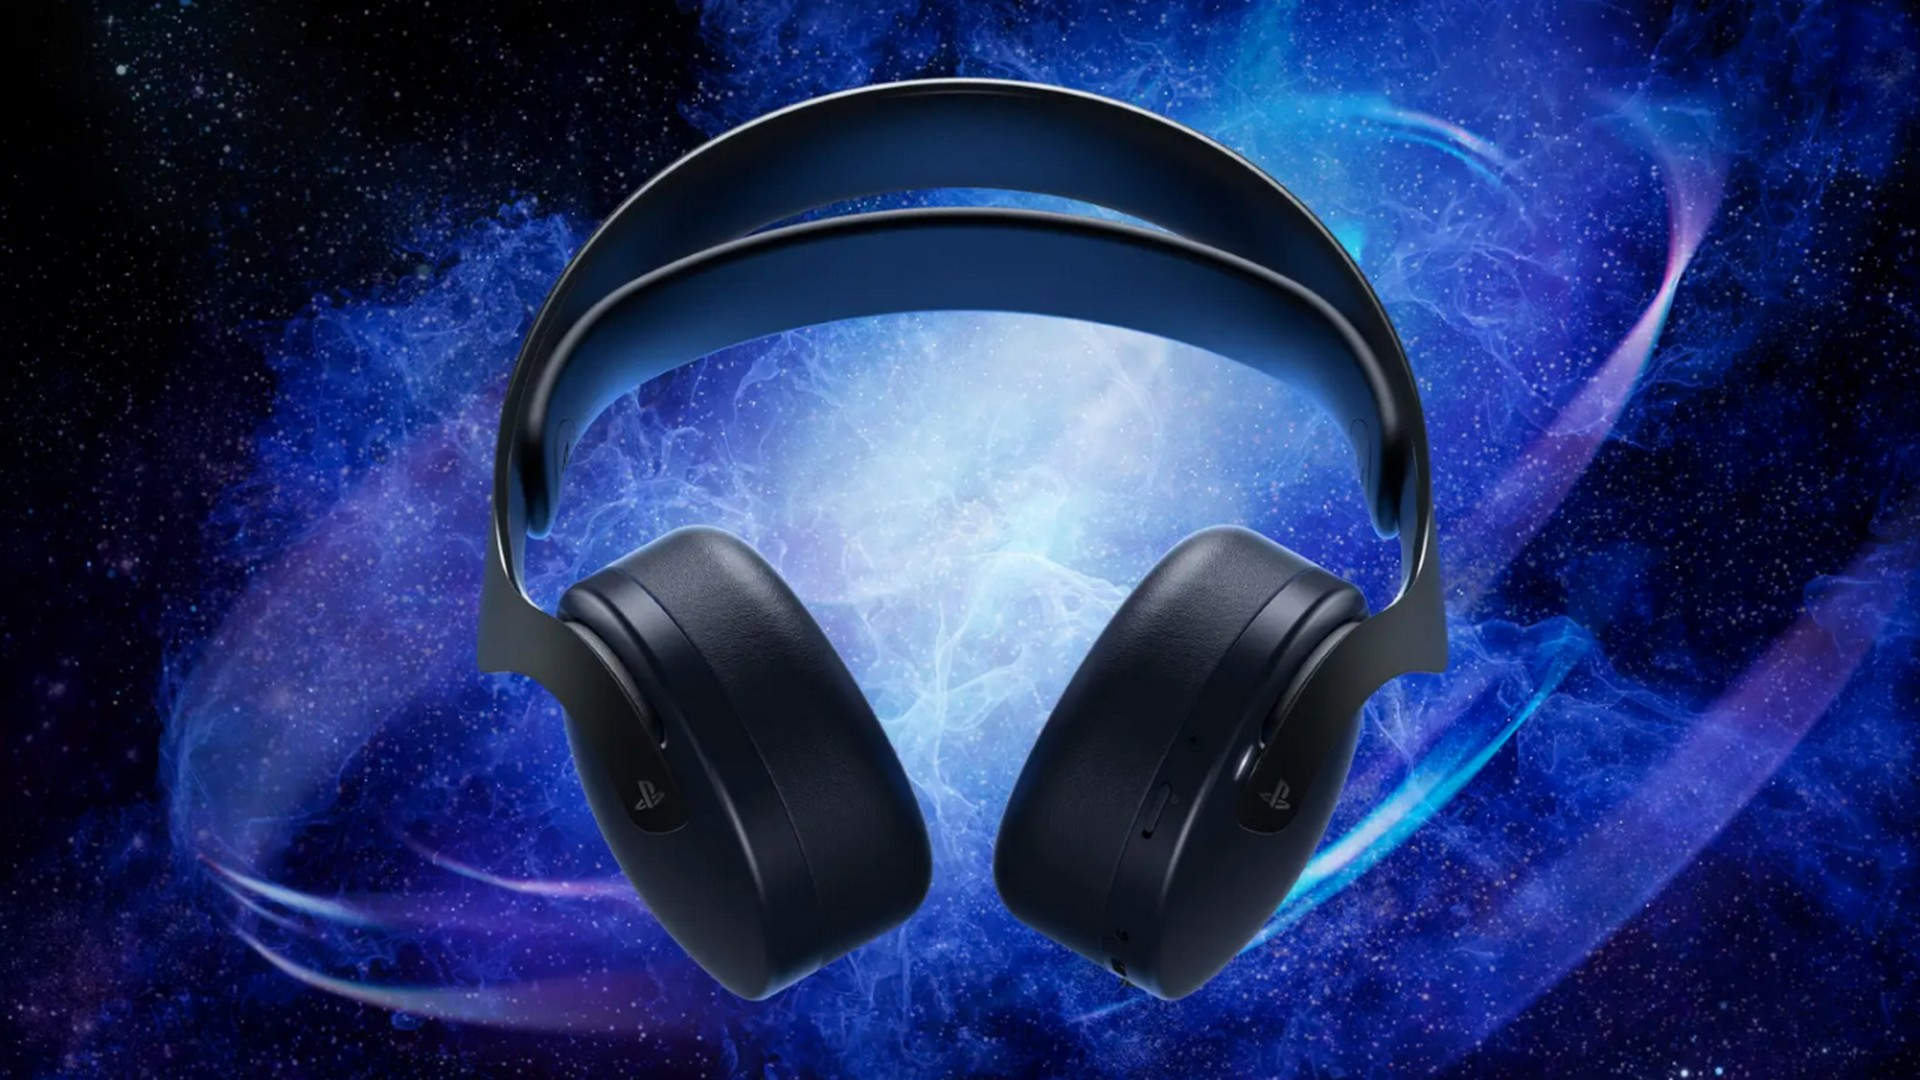 PULSE 3D Wireless Headset In Midnight Black Hits Shelves Starting Next Month